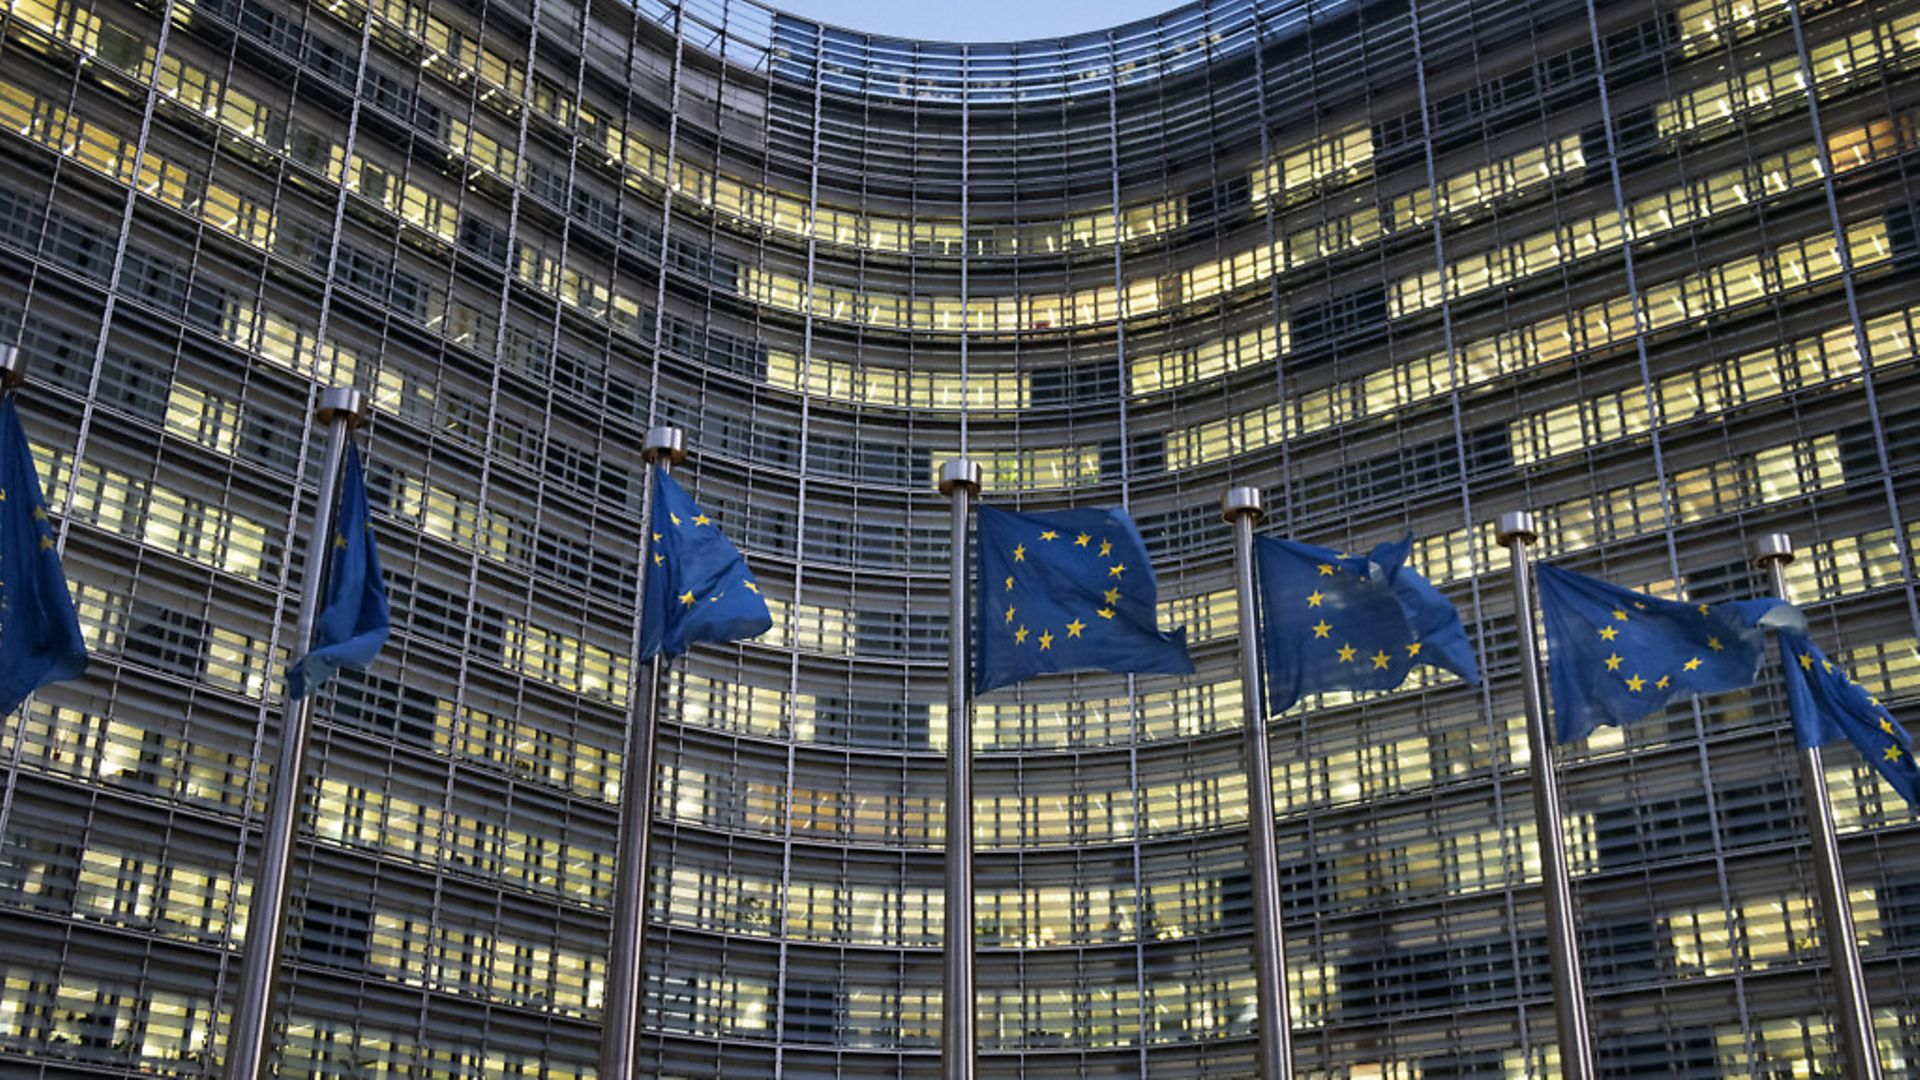 European flags in front of the Berlaymont building, headquarters of the European Commission in Brussels, Belgium. Picture: Getty Images - Credit: NurPhoto via Getty Images